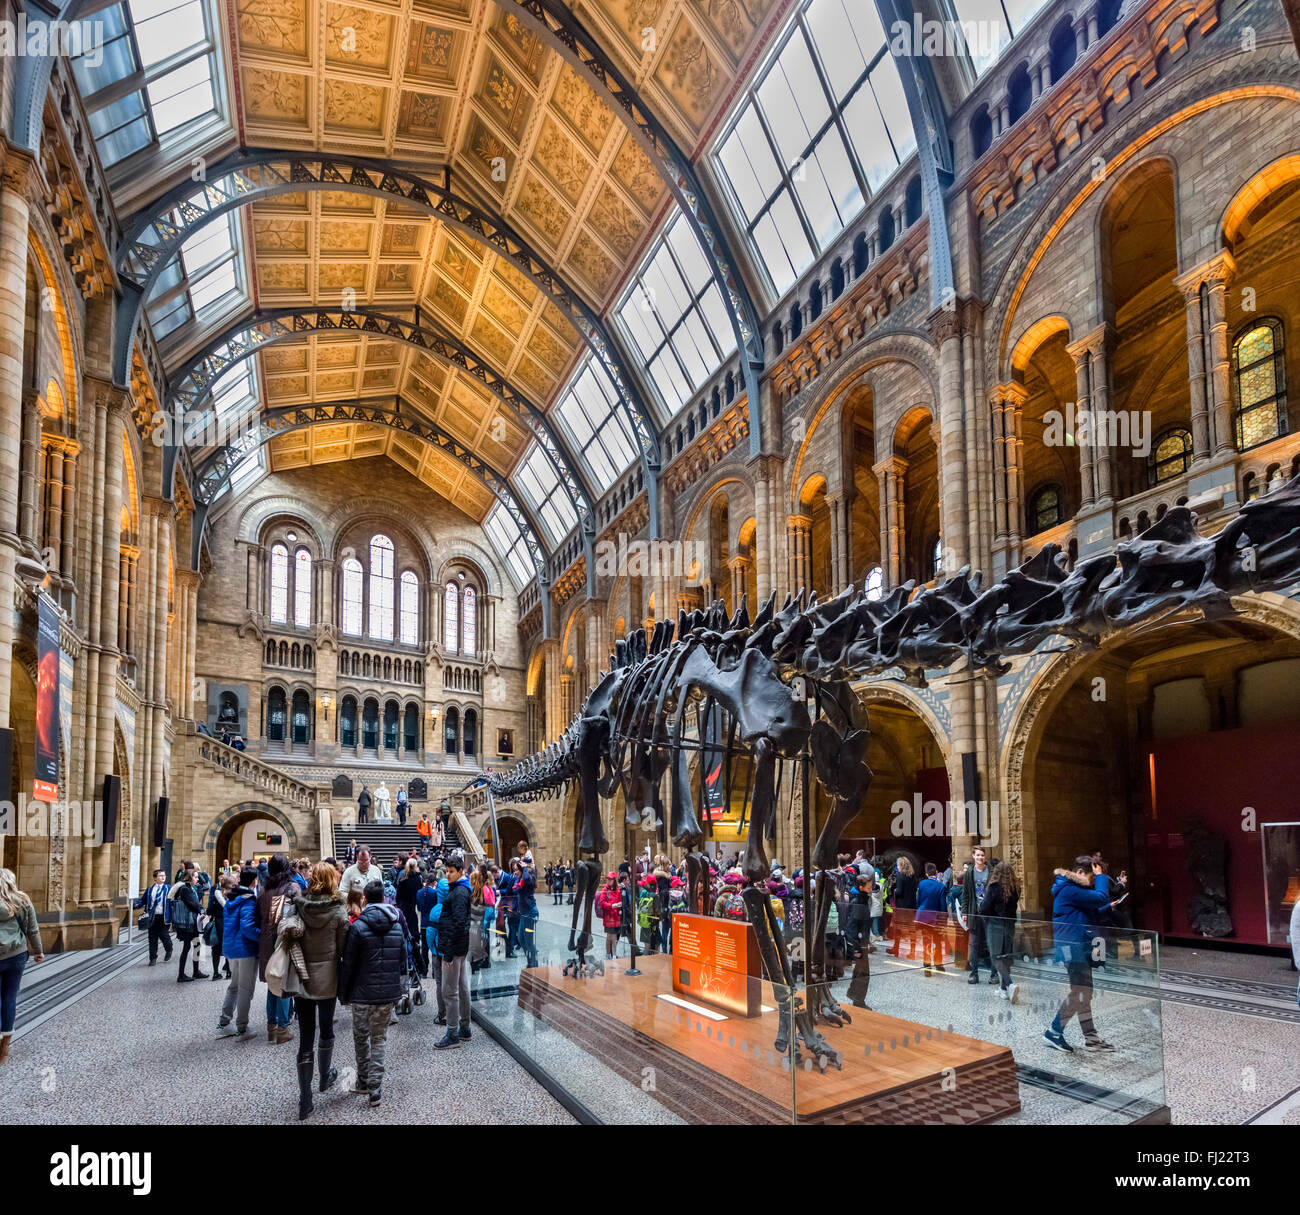 'Dippy' the Diplodocus, a fossil skeleton cast in Hintze Hall, Natural History Museum, South Kensington, - Stock Image